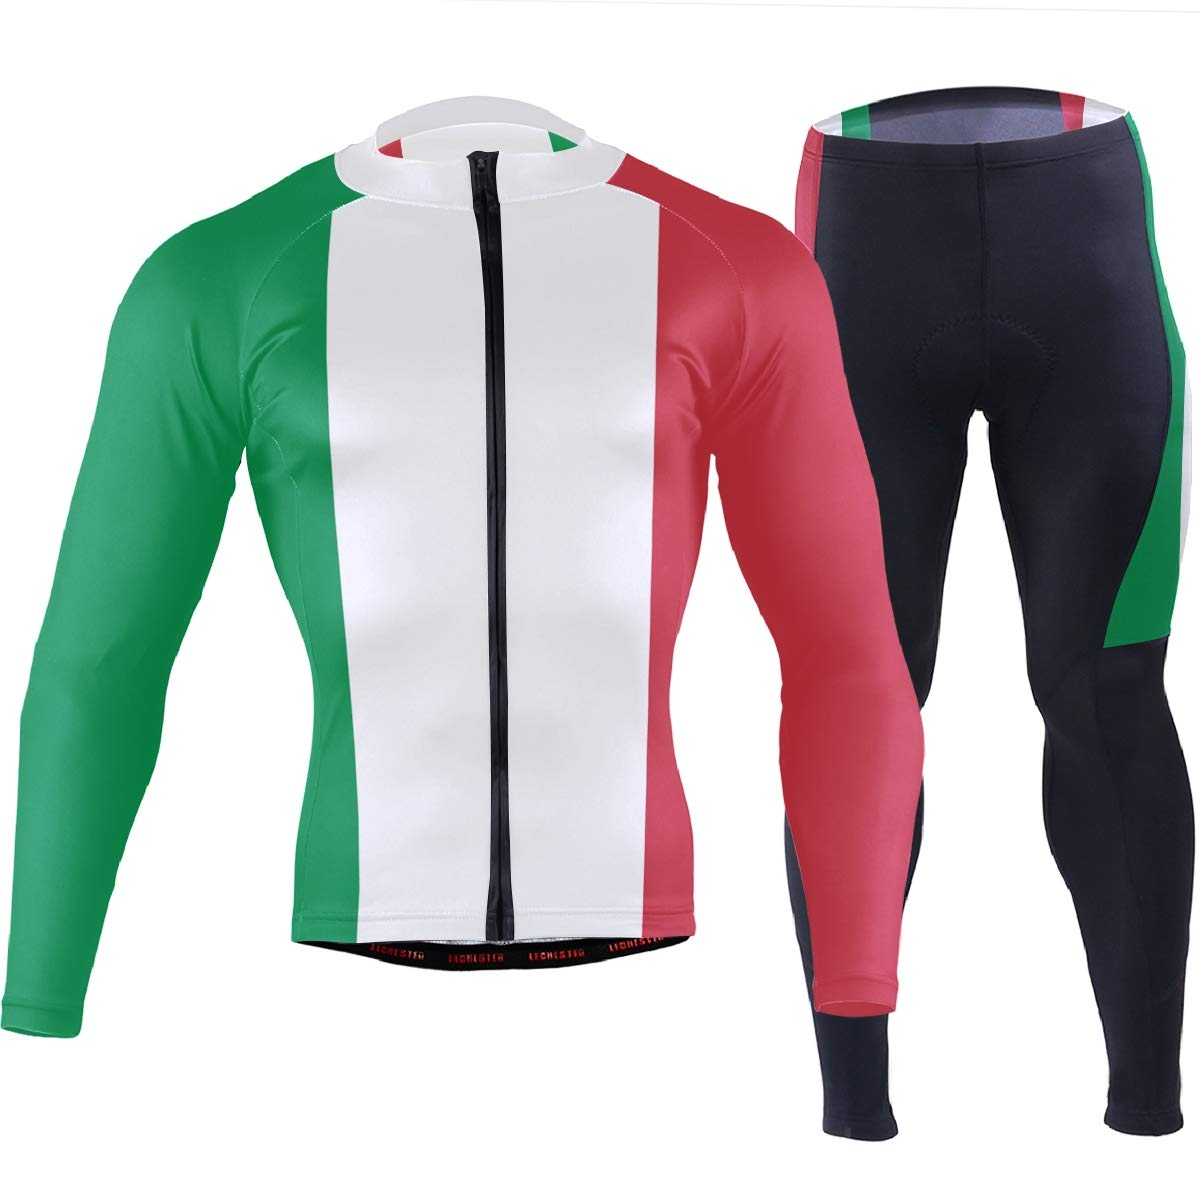 CHINEIN Men's Cycling Jersey Long Sleeve with 3 Rear Pockets Suit Italy Flag